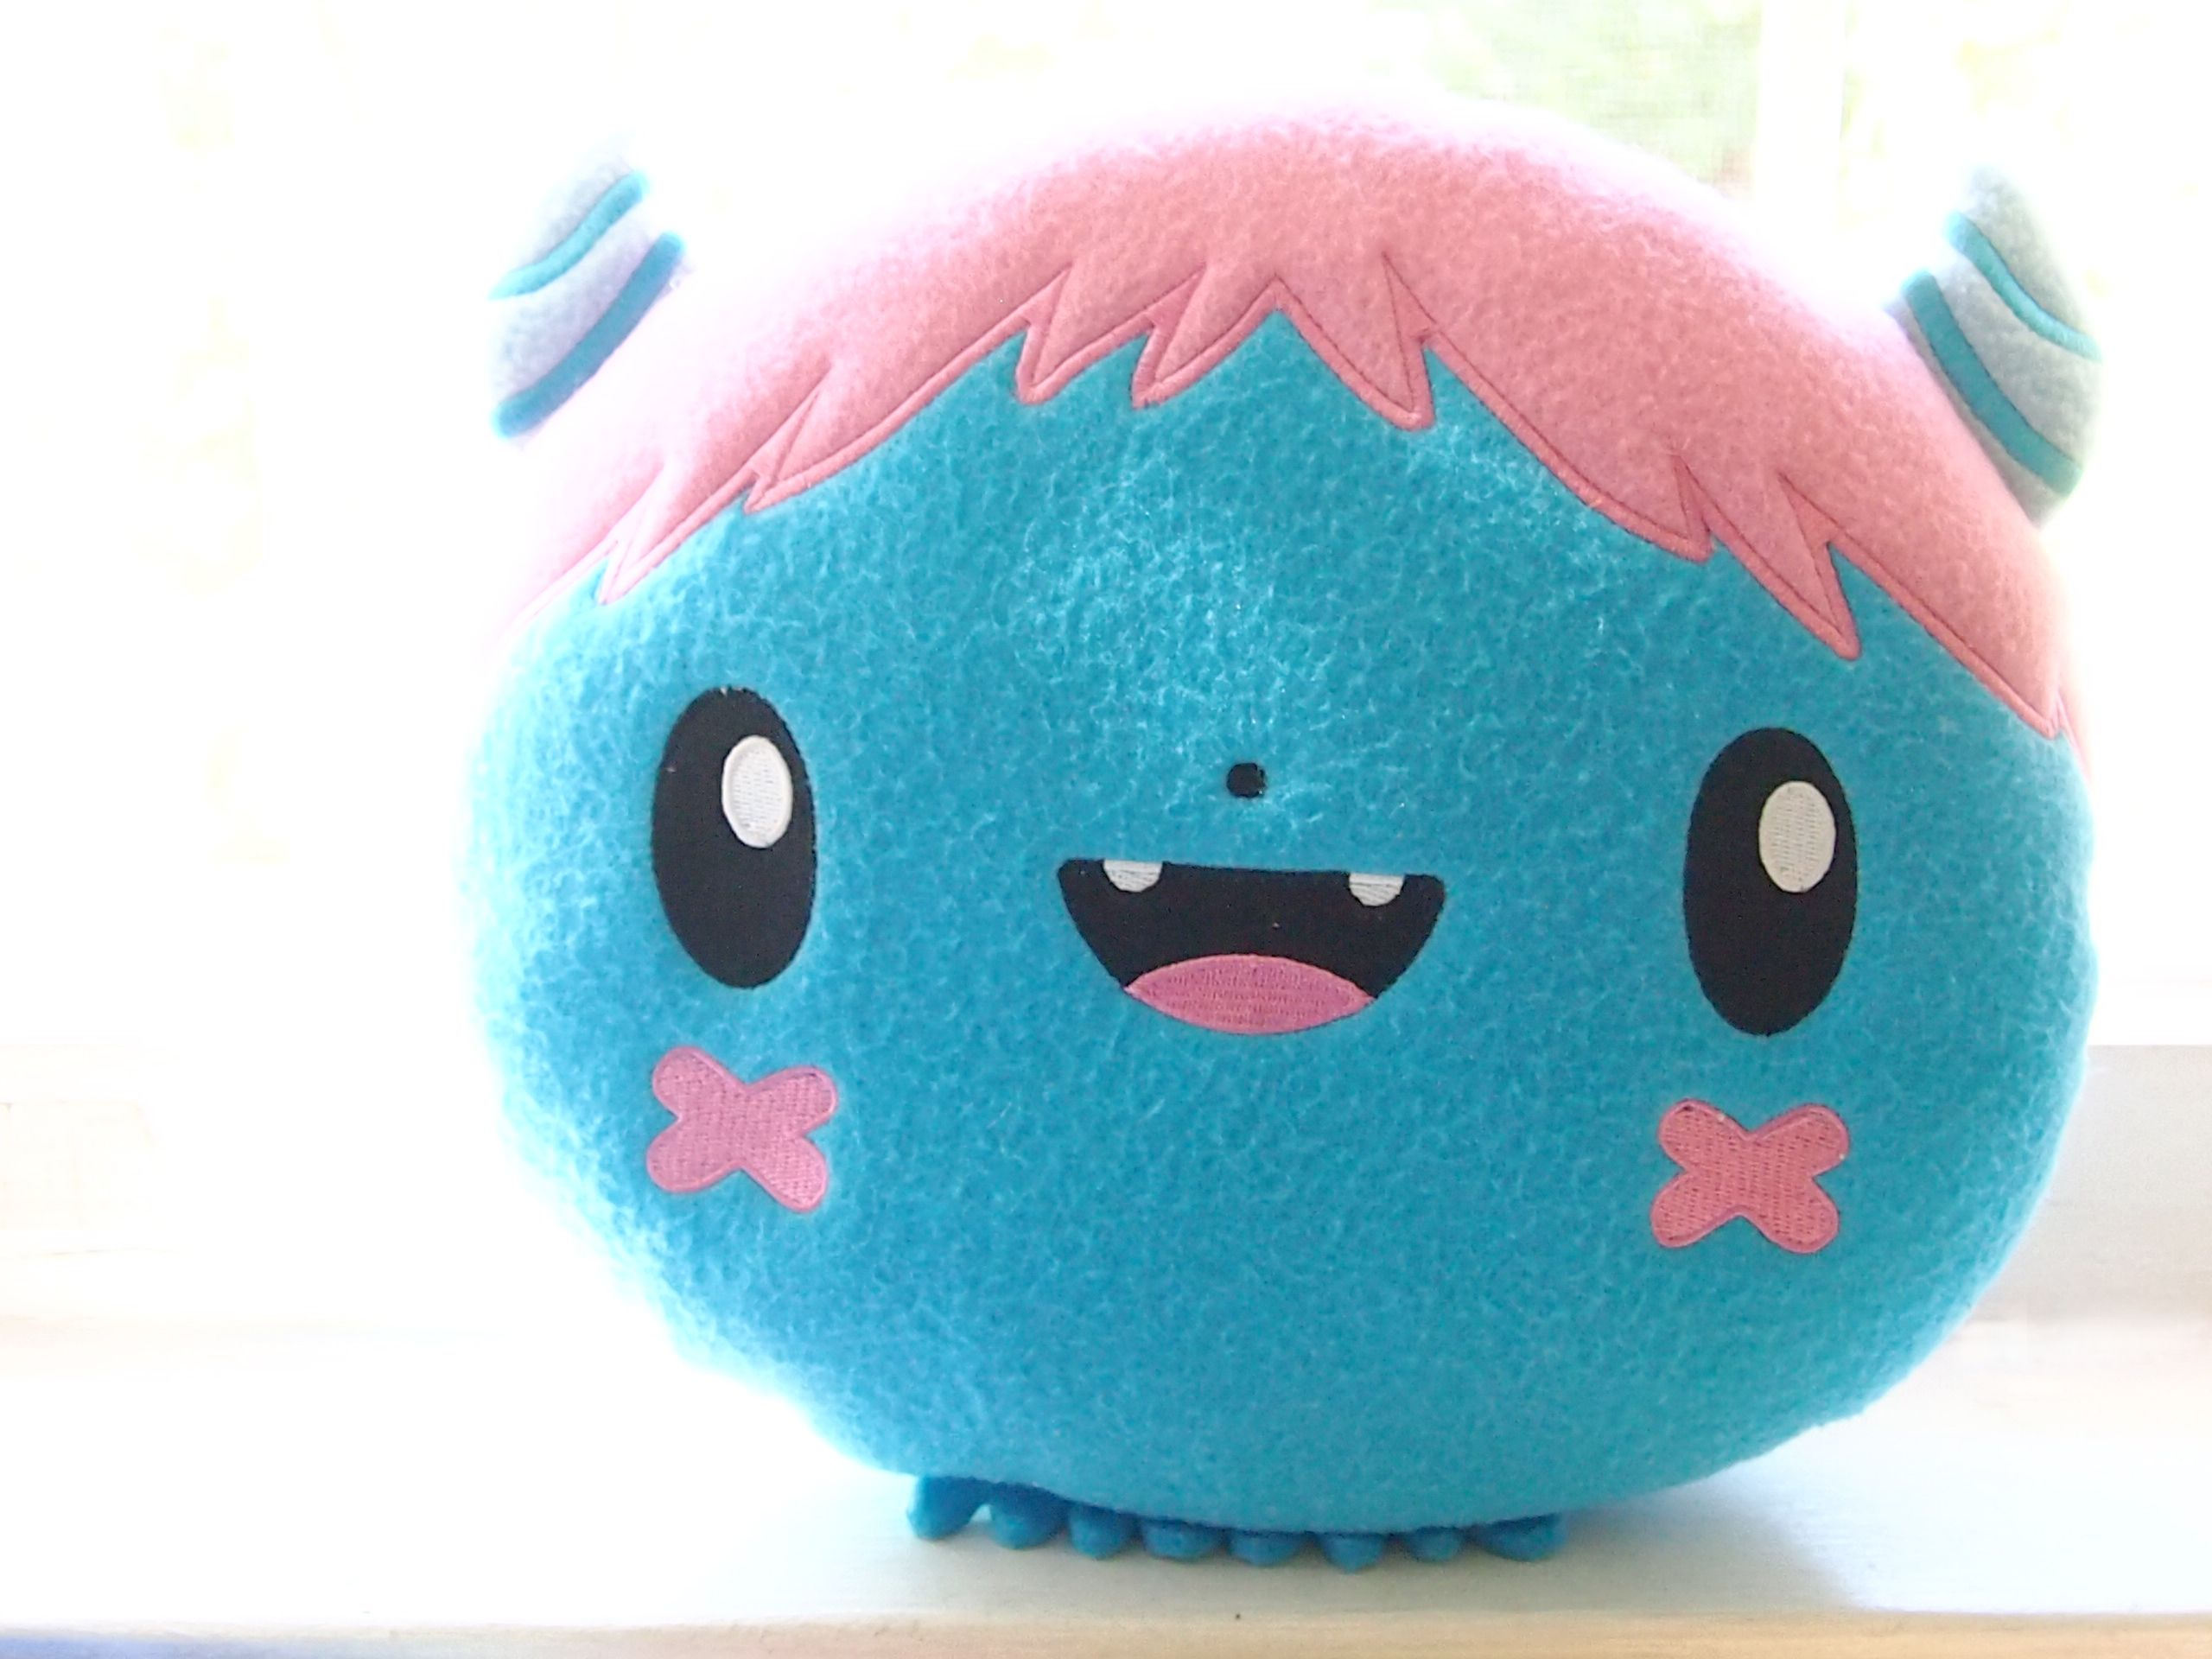 This super cute Booba plush measures 10 inches and is made of super soft fleece fiber. Can double as a pillow!  LIMITED EDITION OF 150 pieces!